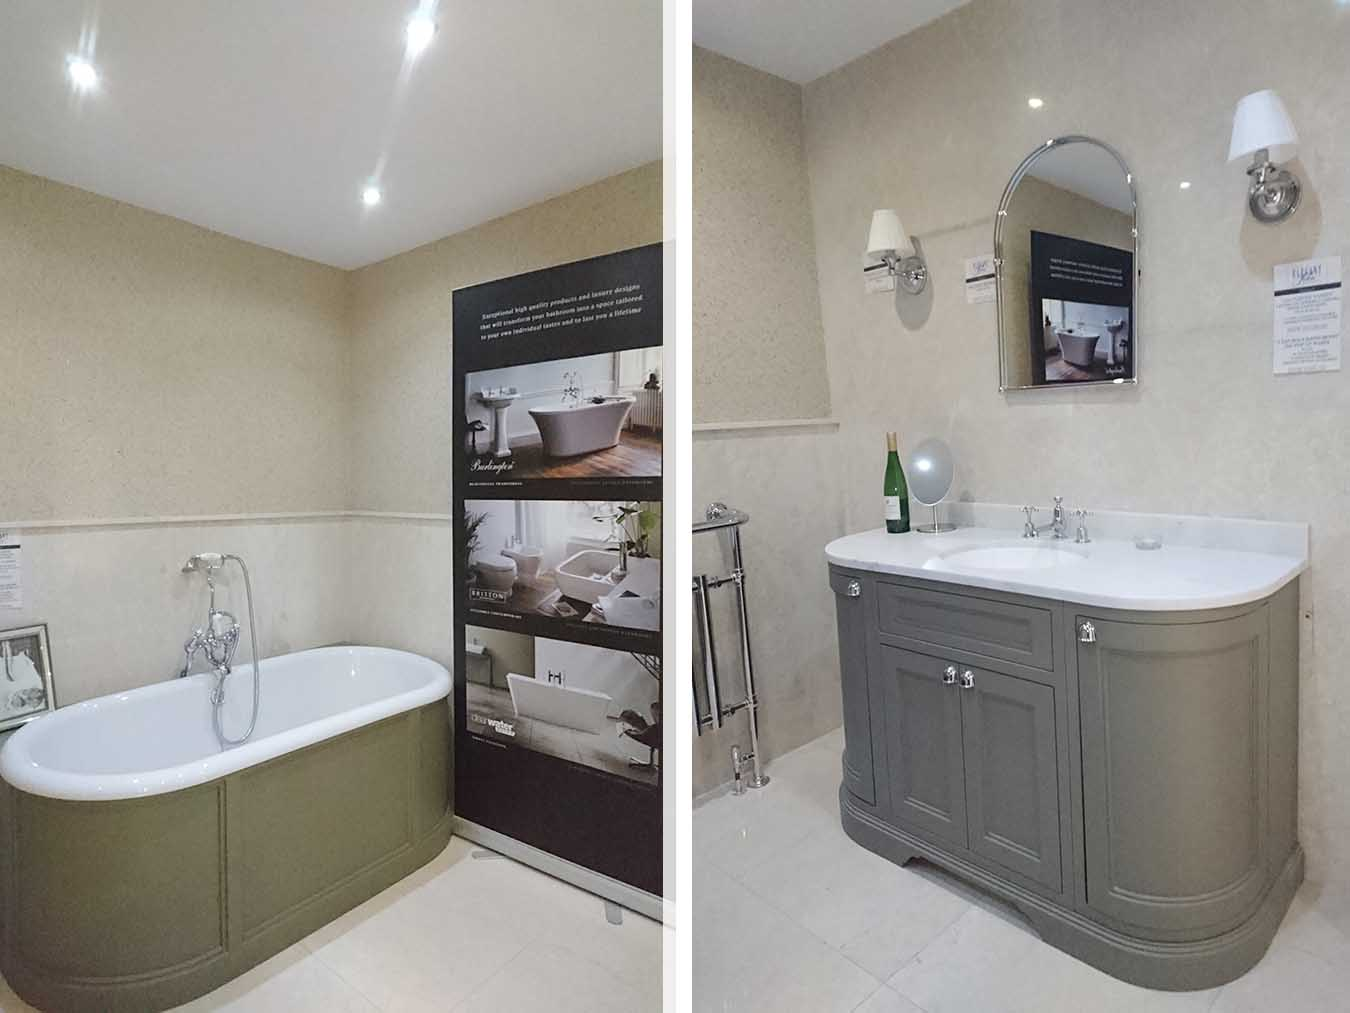 Elegant John Bathrooms Unit 9 Finglas Business Centre Jamestown Rd Finglas North Dublin 11